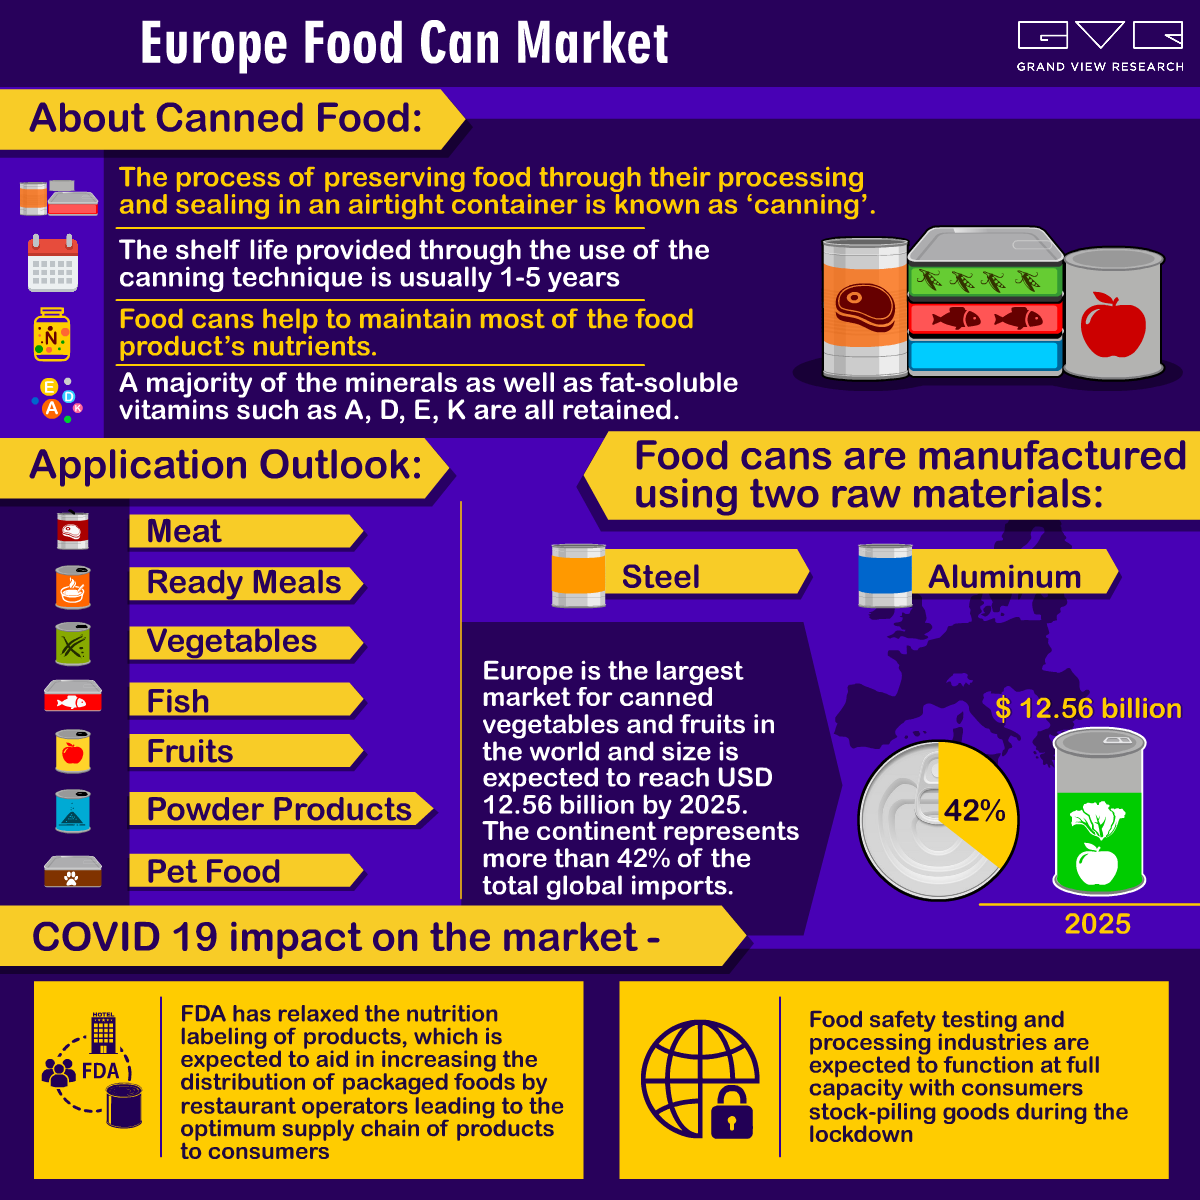 Europe Food Can Market